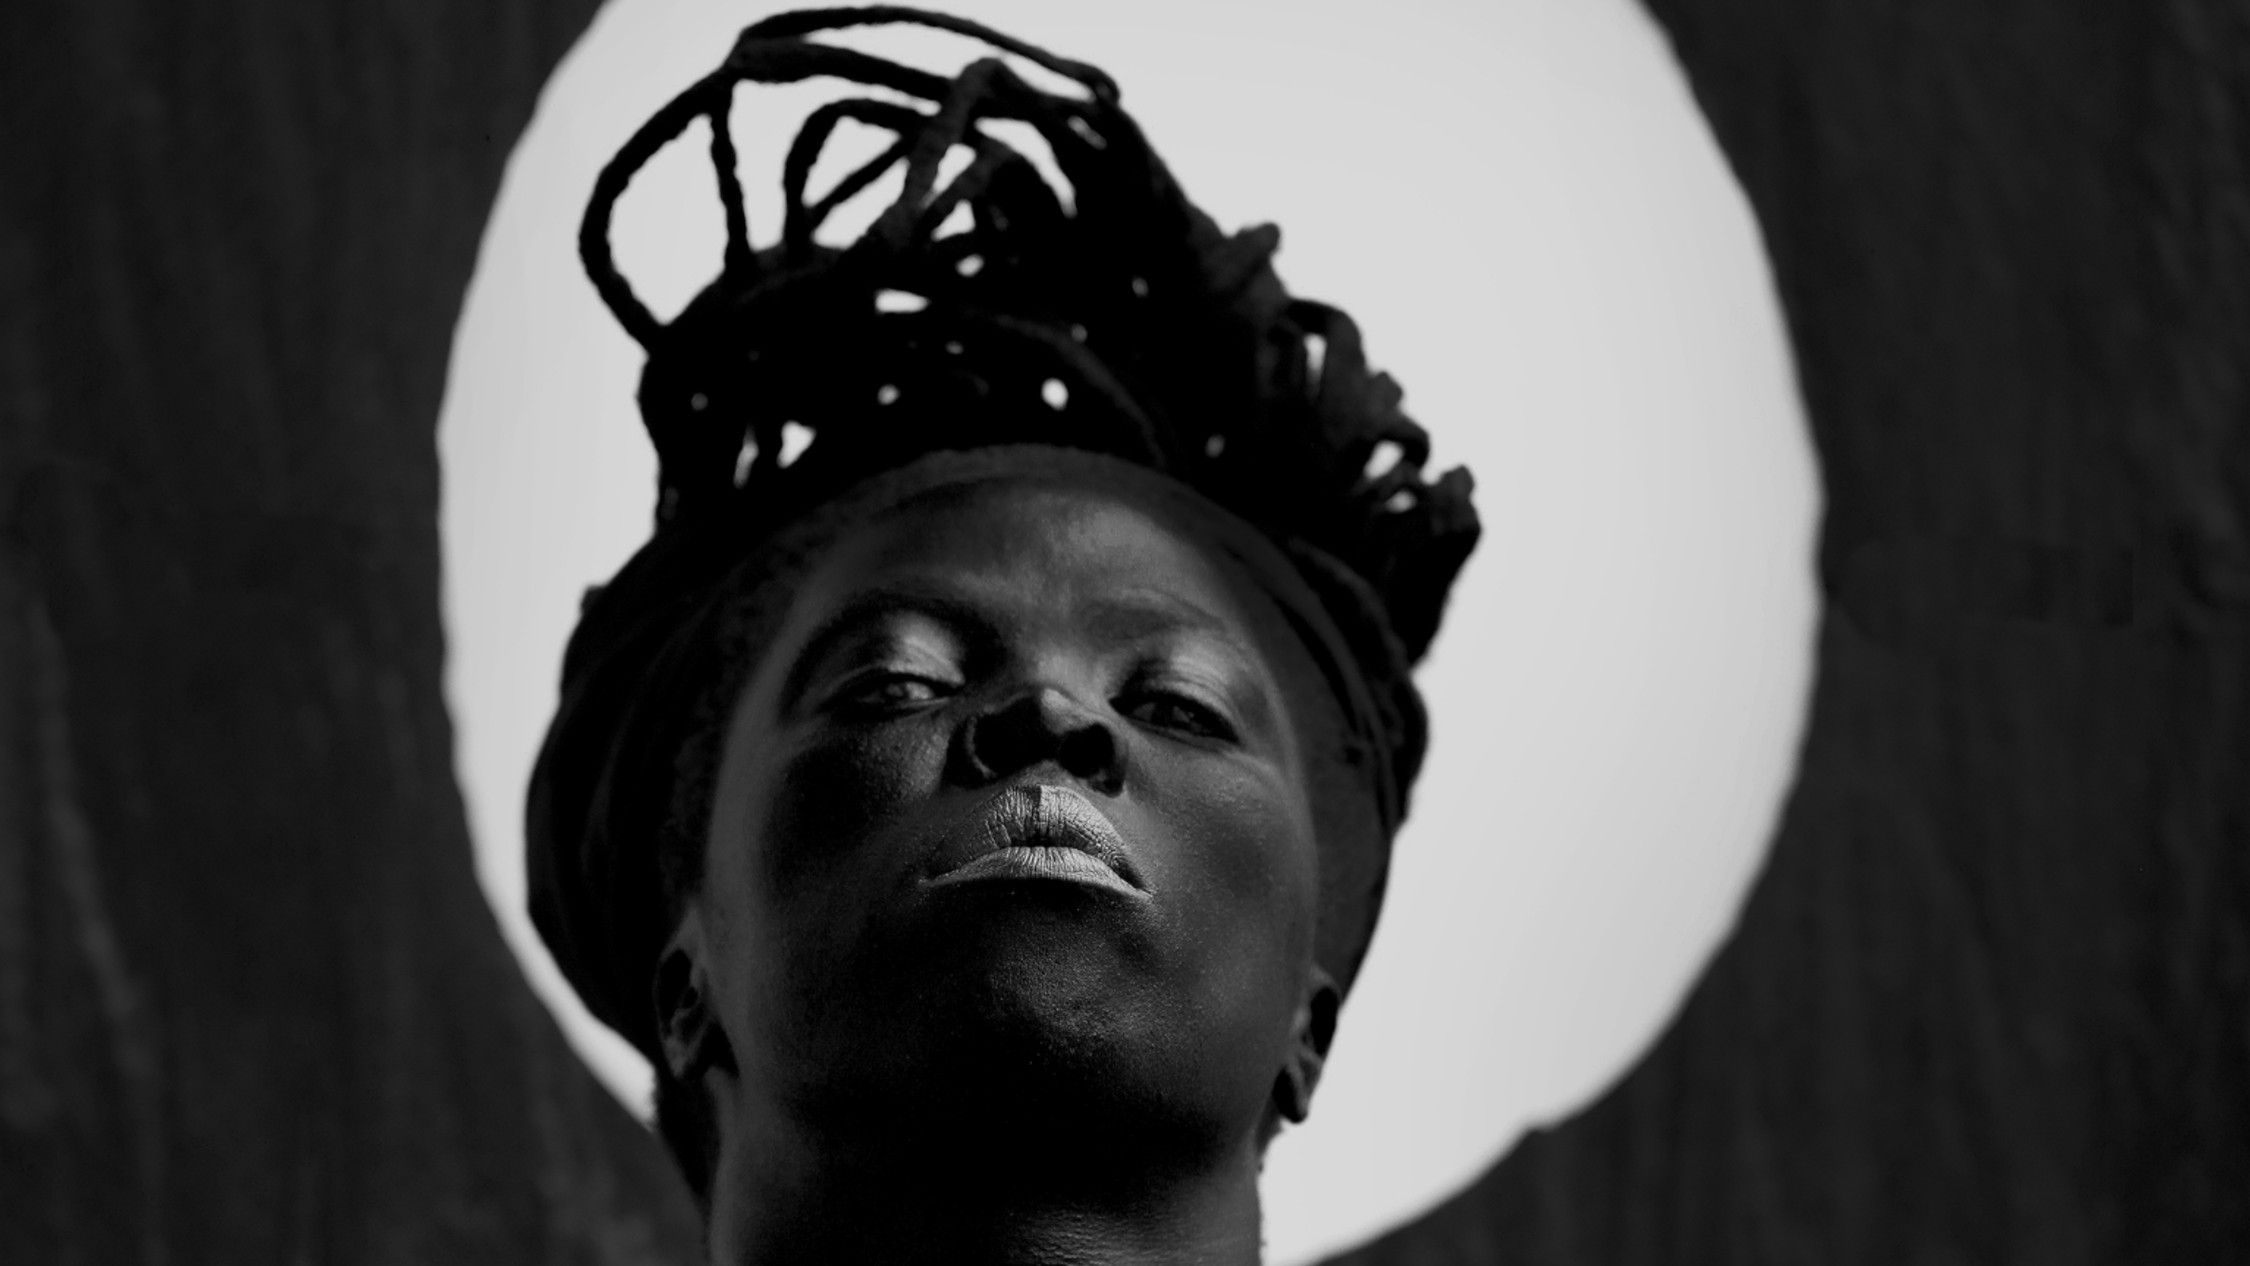 A South African person photographed by Zanele Muholi